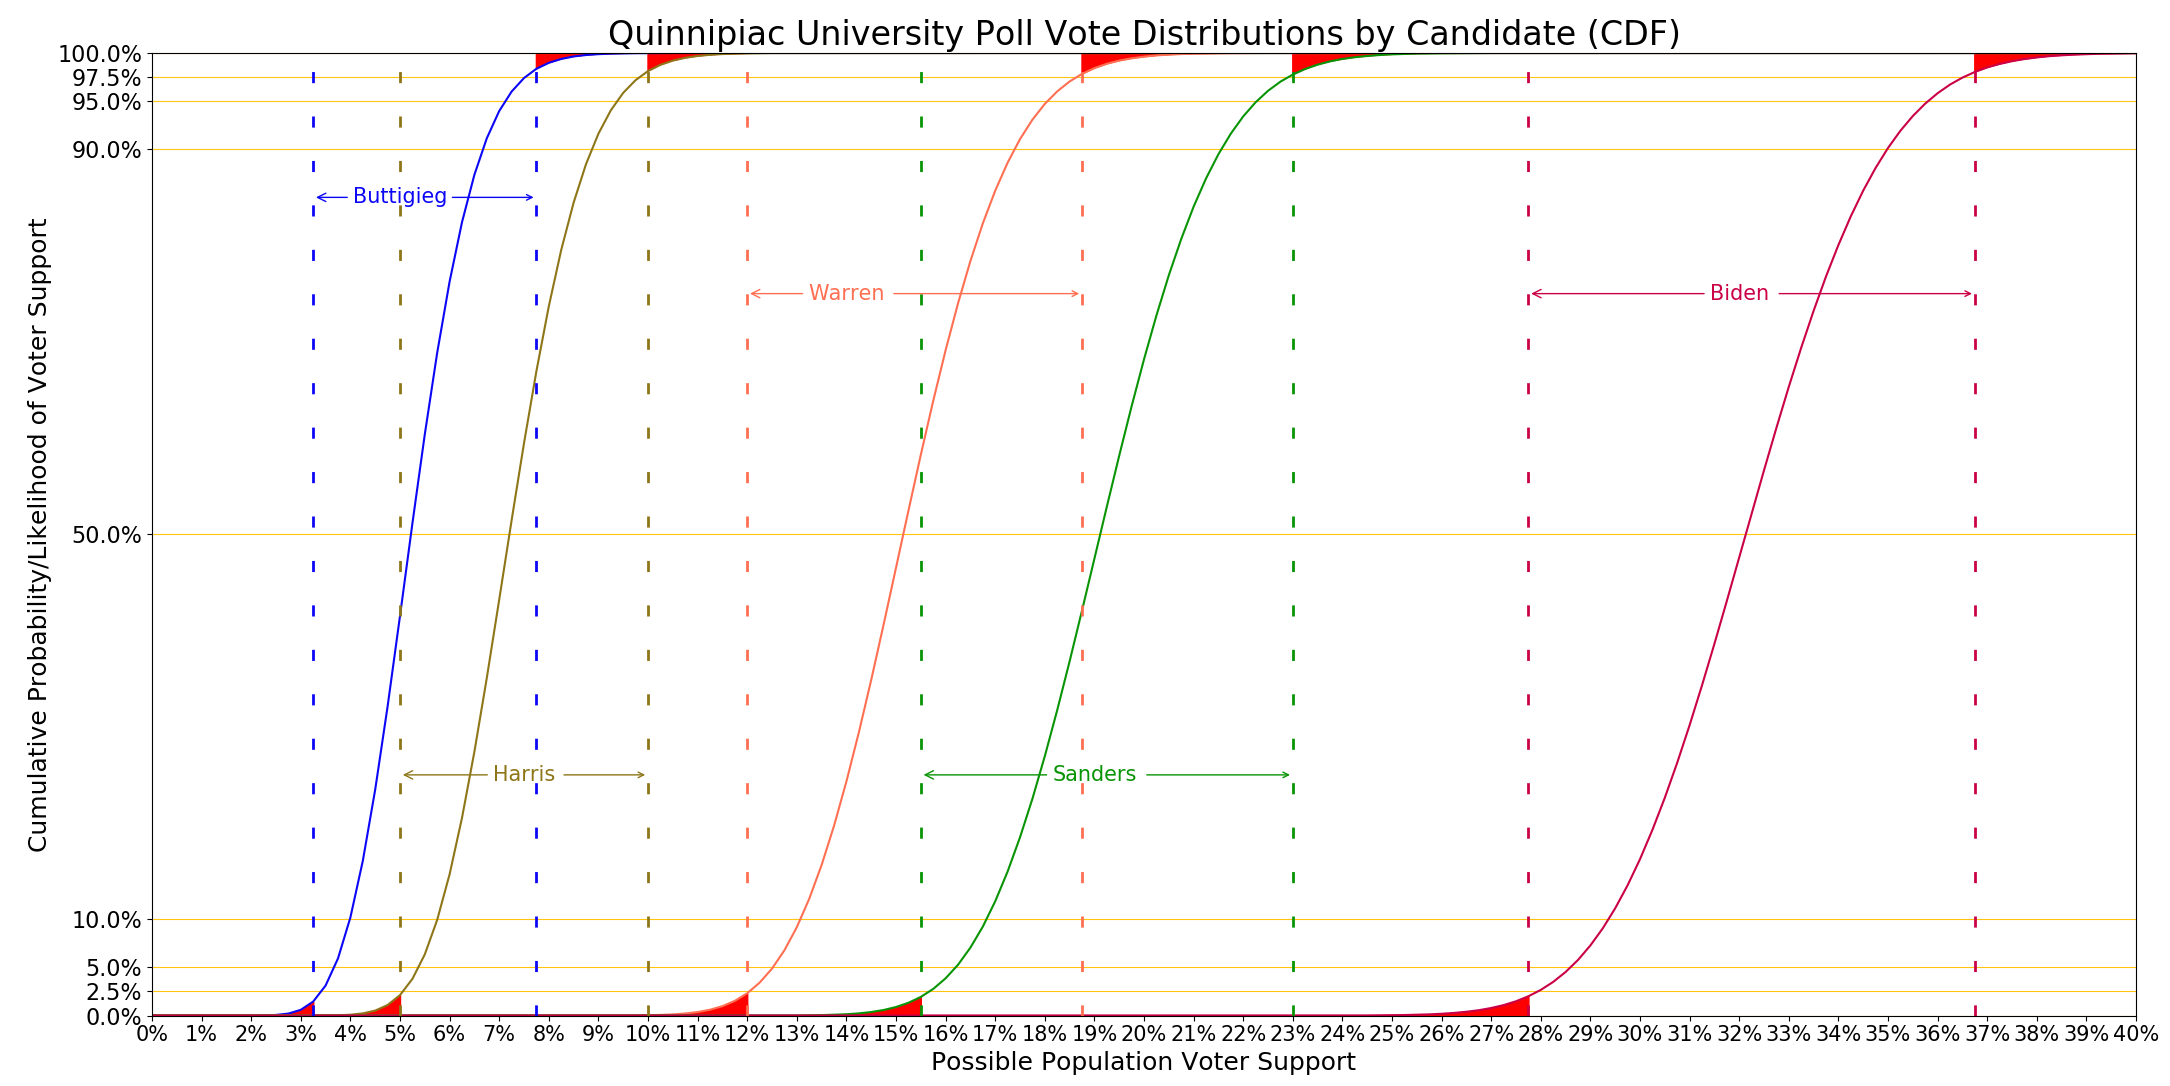 Quinnipiac distributions graph with DE